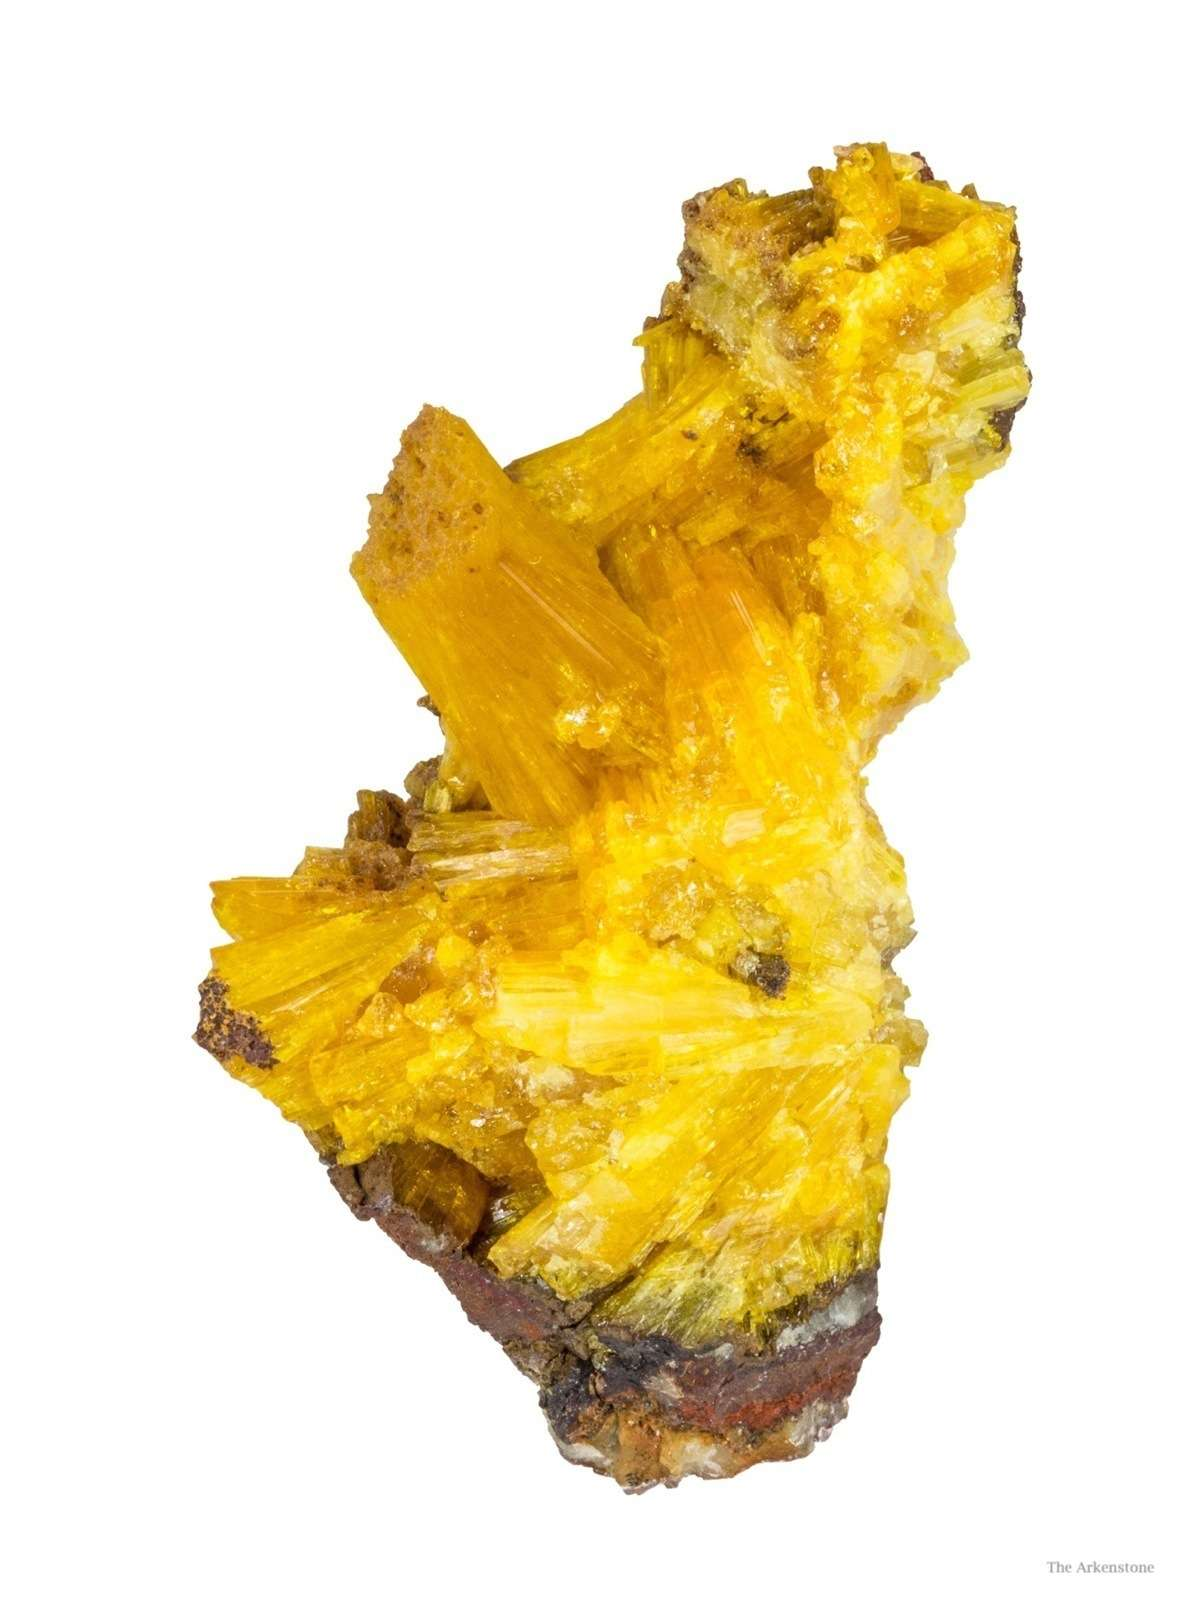 Legrandite collected early 1980s quality flooded levels Ojuela Mine